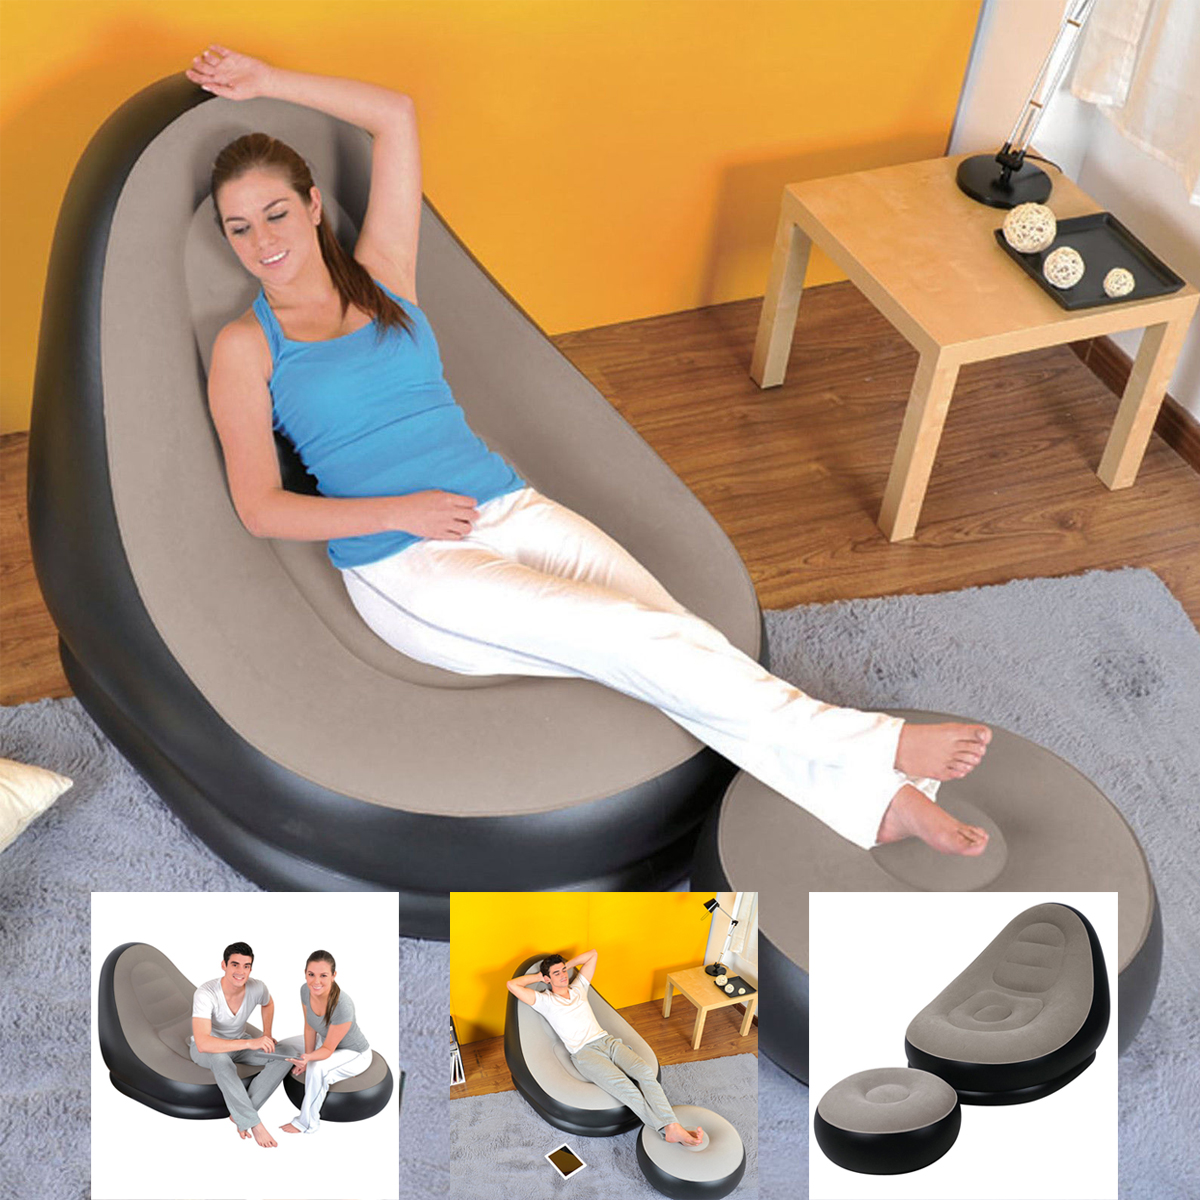 Inflatable Sofa Review: JILONG DELUXE INFLATABLE LOUNGE LOUNGER CHAIR WITH OTTOMAN